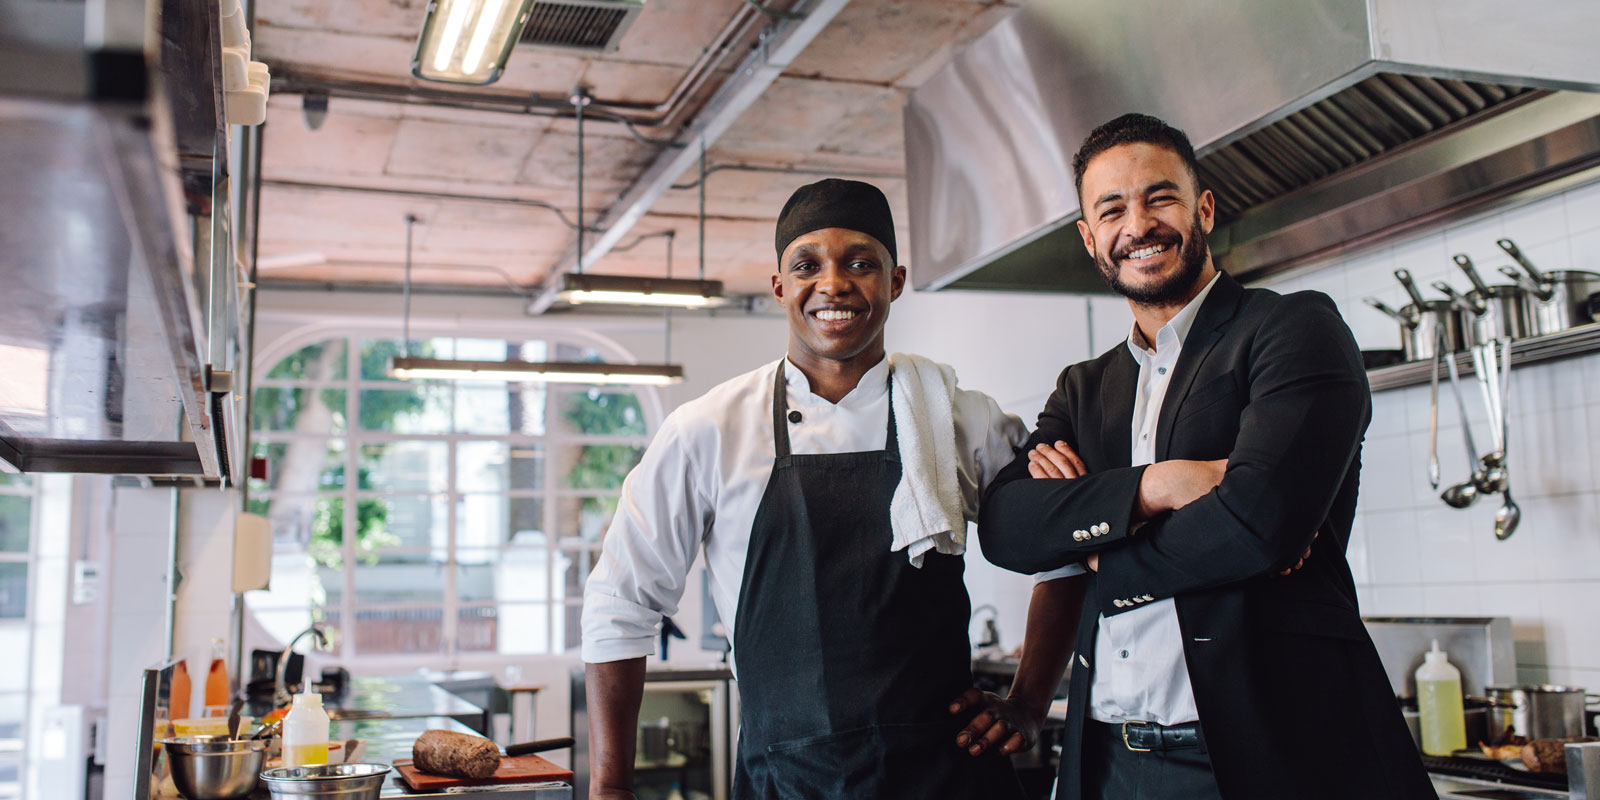 business man taking a photo with a chef